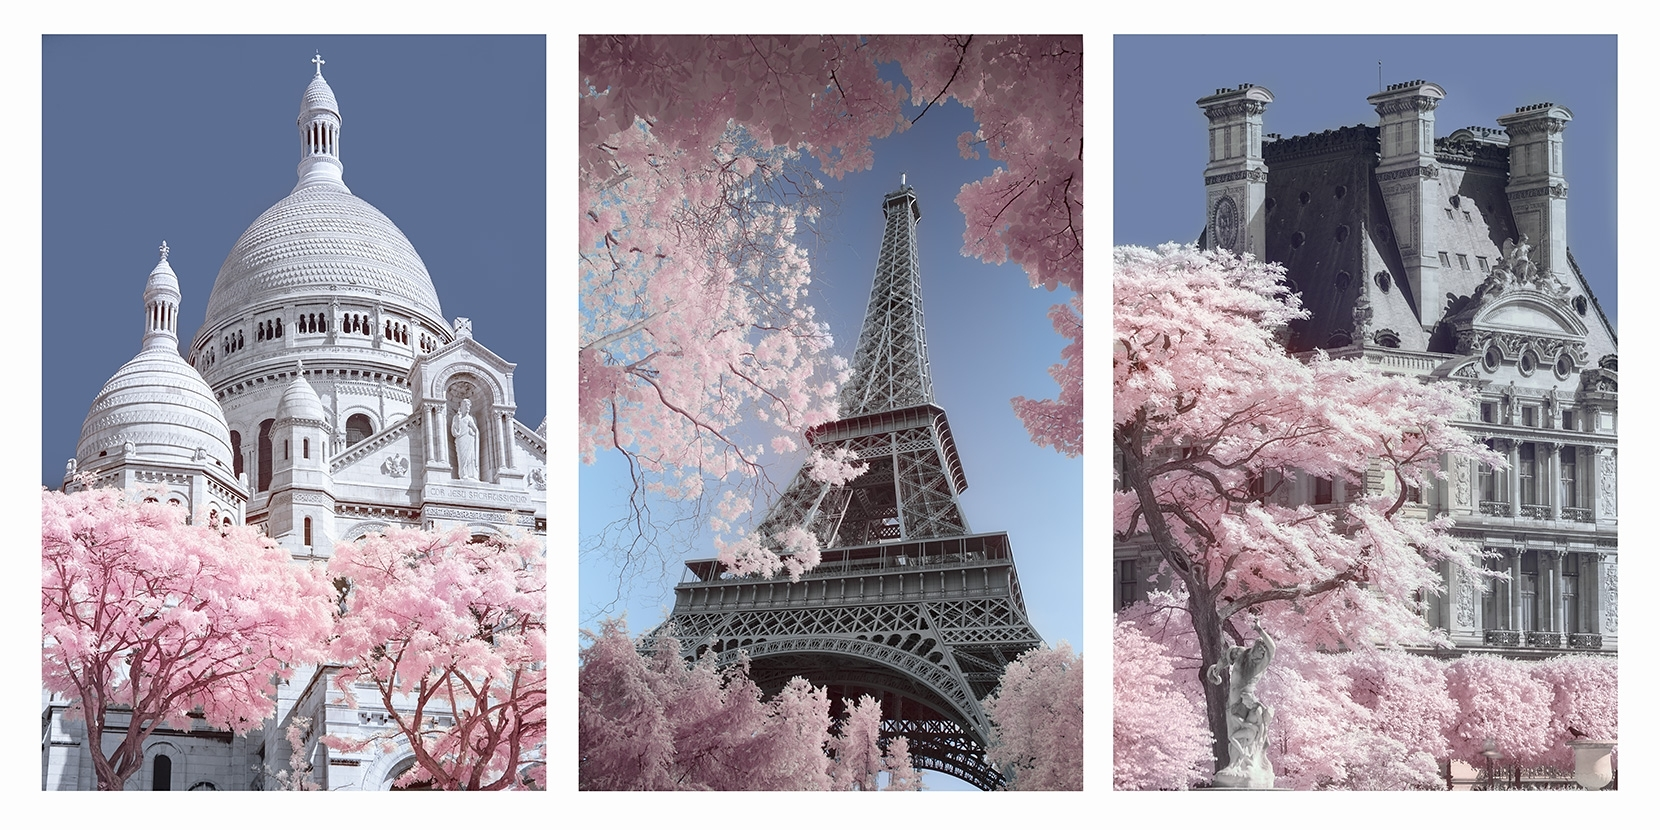 No designed as a tripych, but three individually saleable images of Paris in infrared